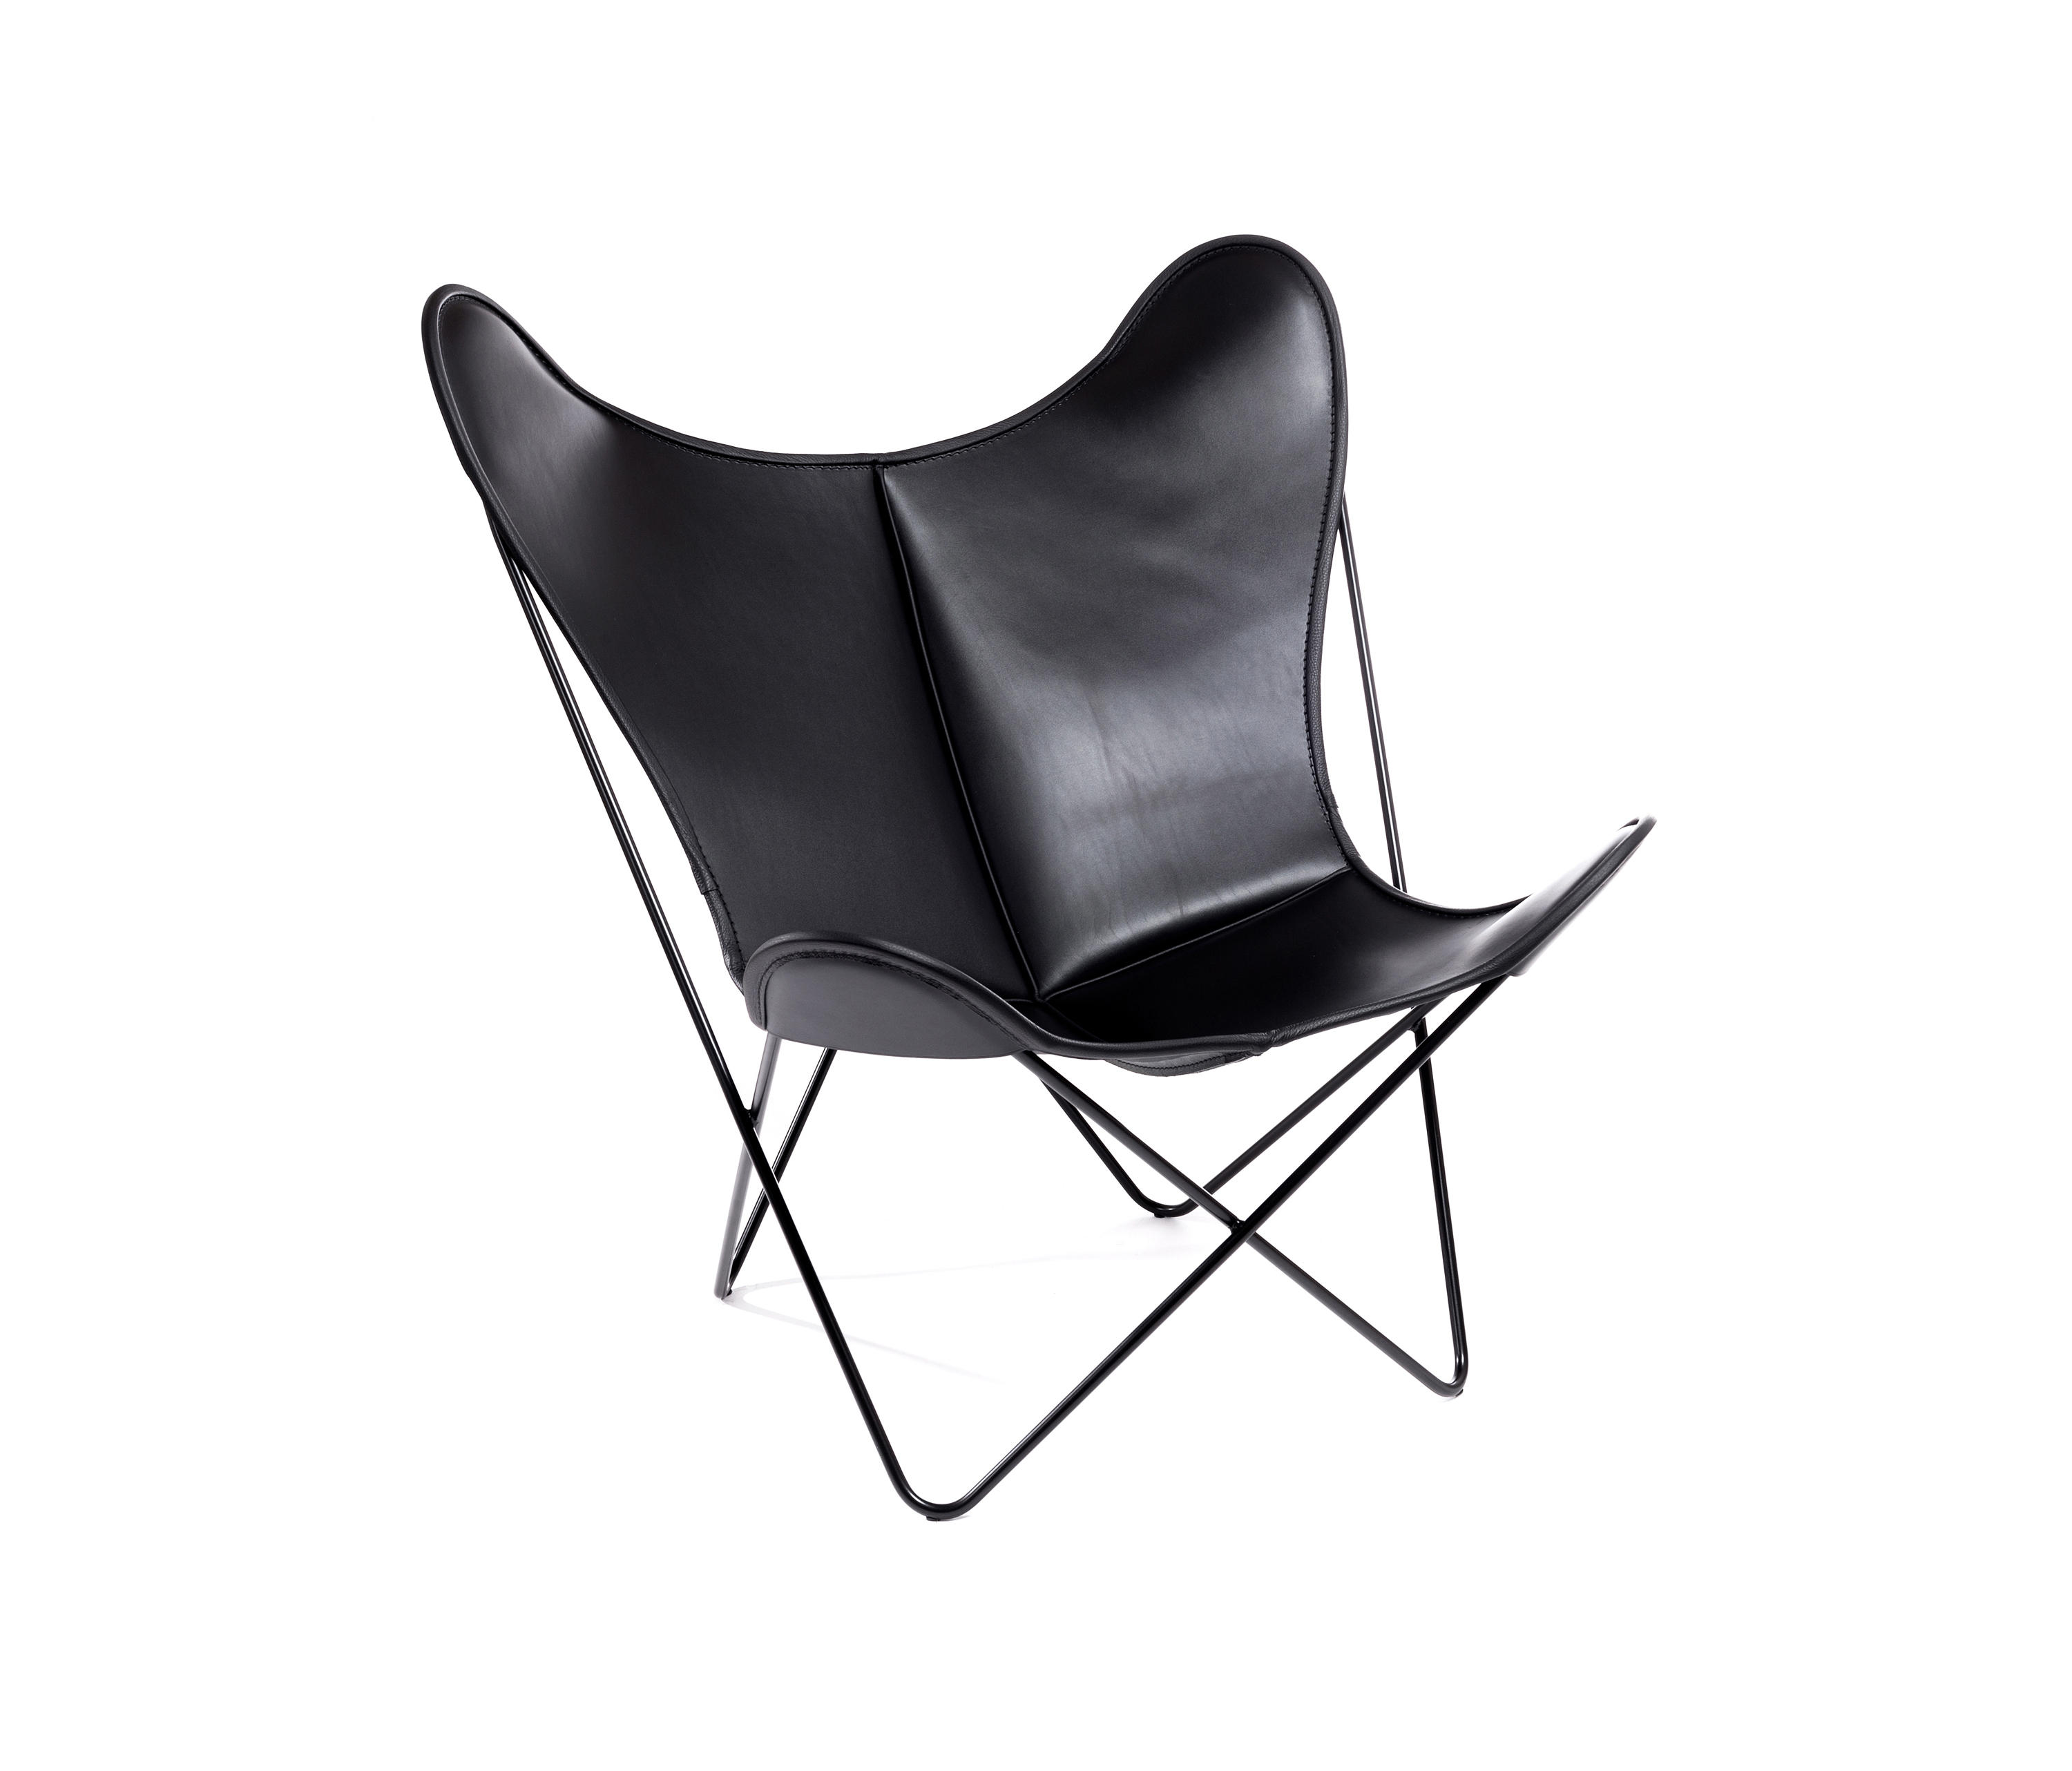 hardoy butterfly chair blank leder schwarz lounge chairs from manufakturplus architonic. Black Bedroom Furniture Sets. Home Design Ideas